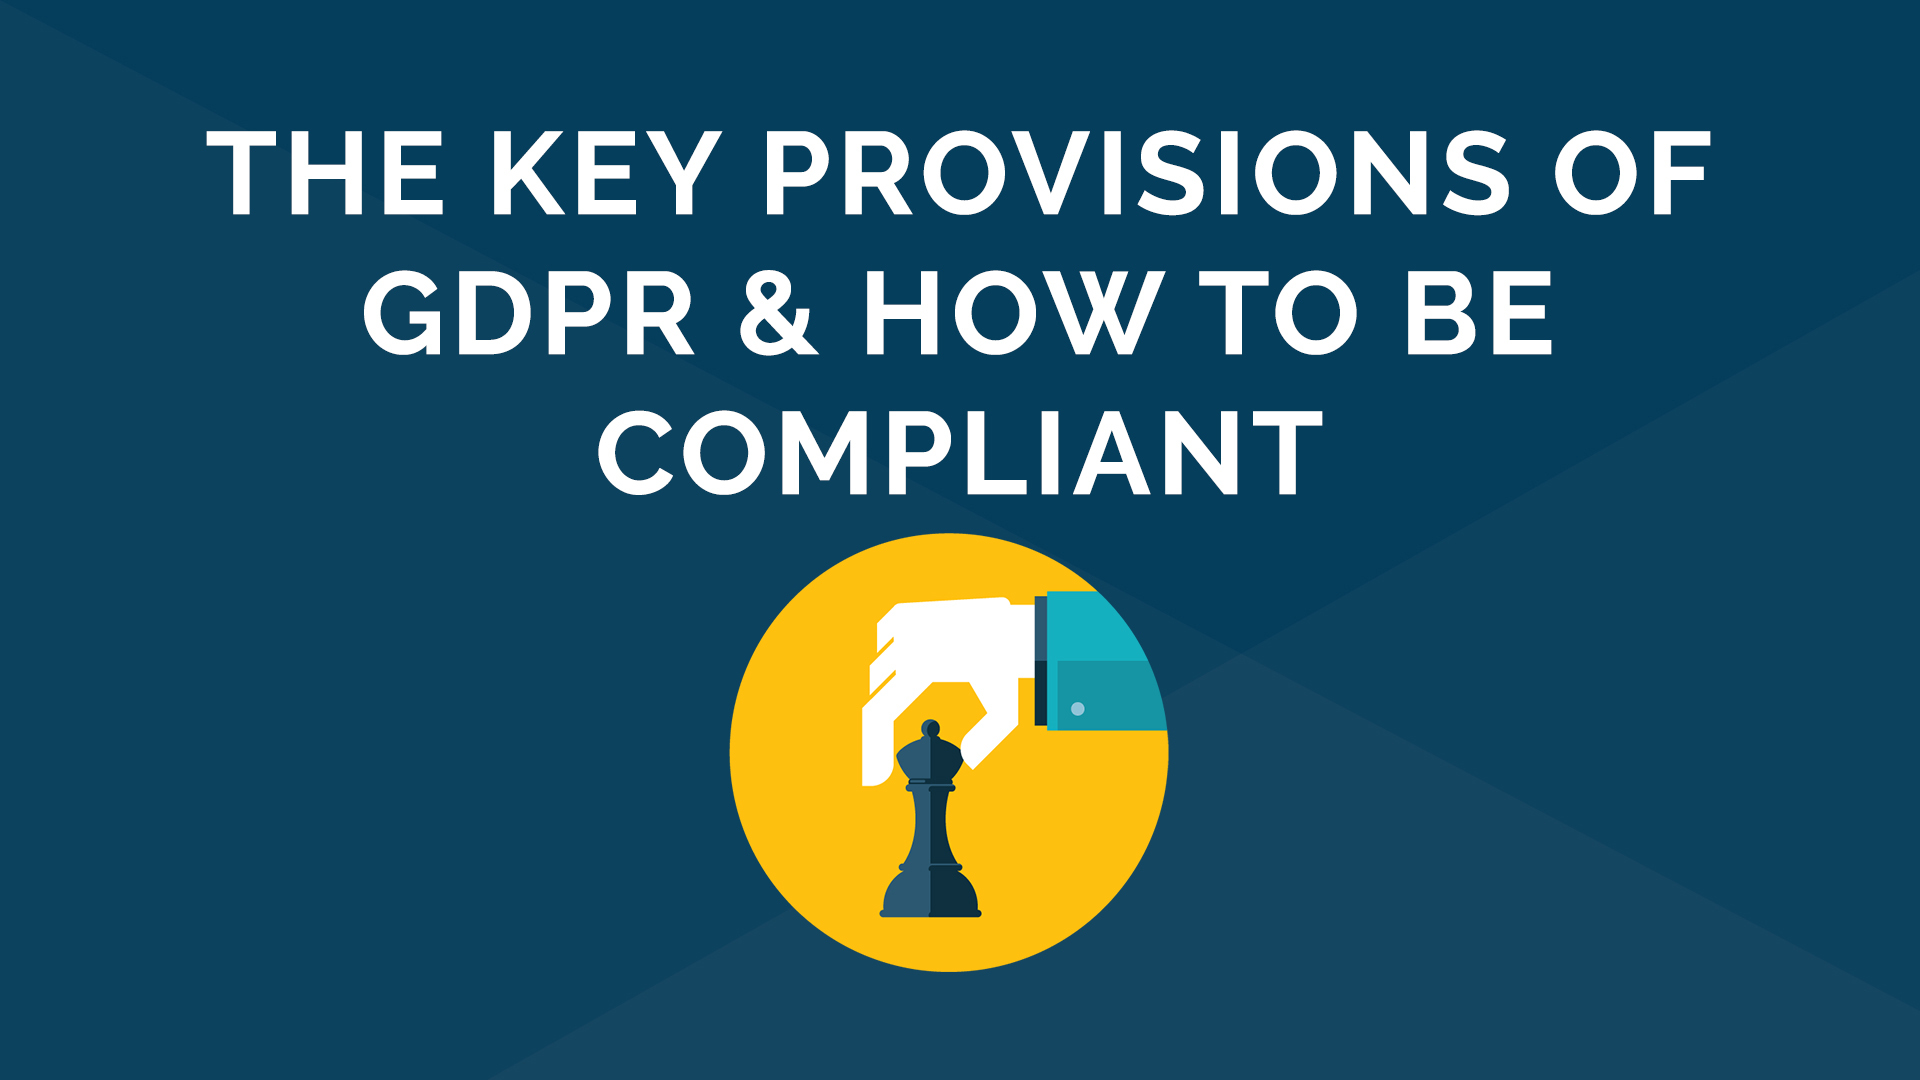 The Key provisions of GDPR and What Actions You Need to Take to Be Compliant